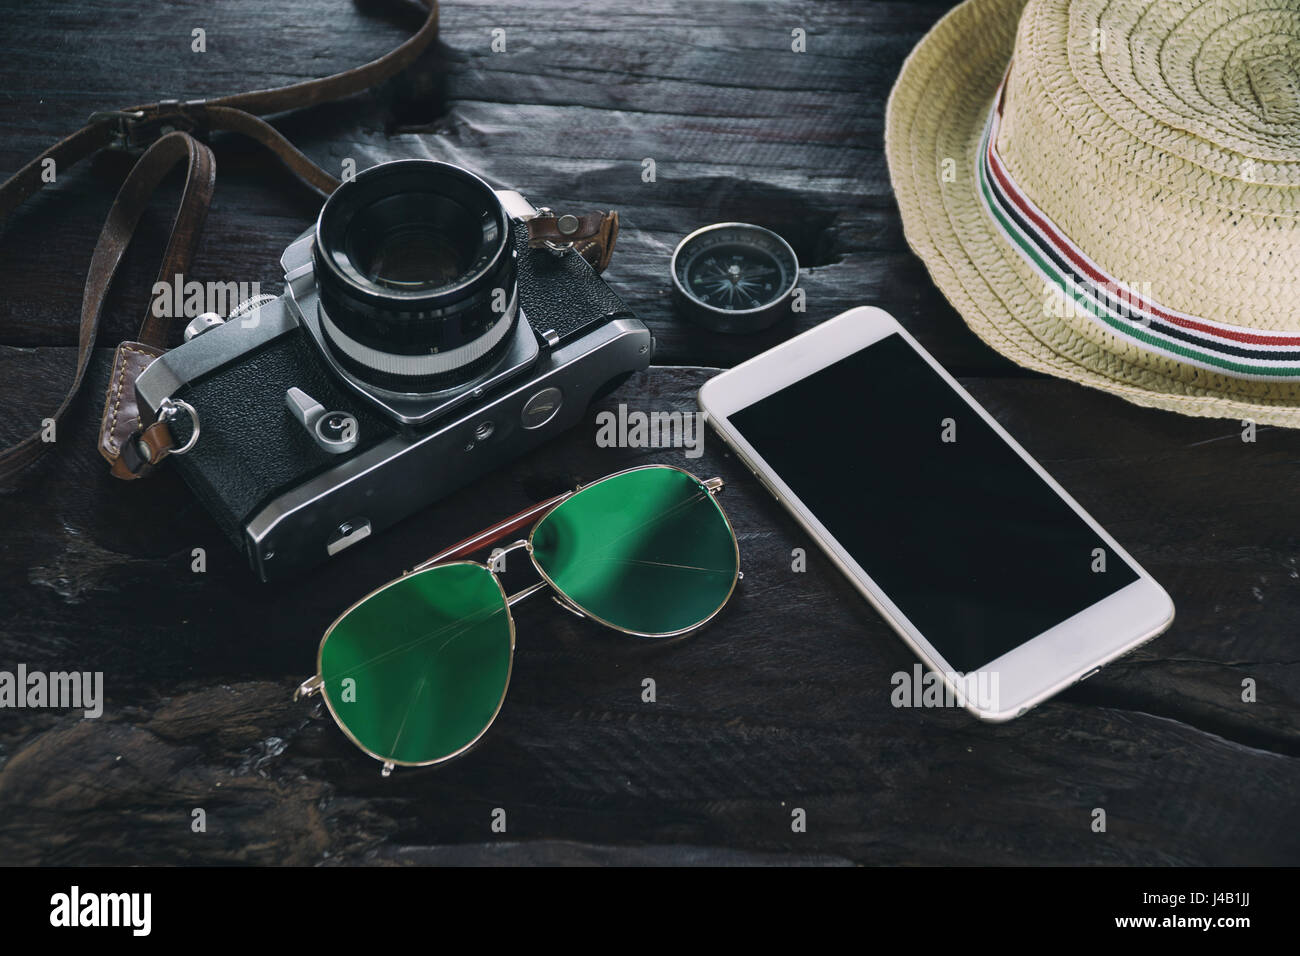 travel accessories on desk such as camera eyeglasses compass hat smart phone technology,travel equipment for blogger - Stock Image